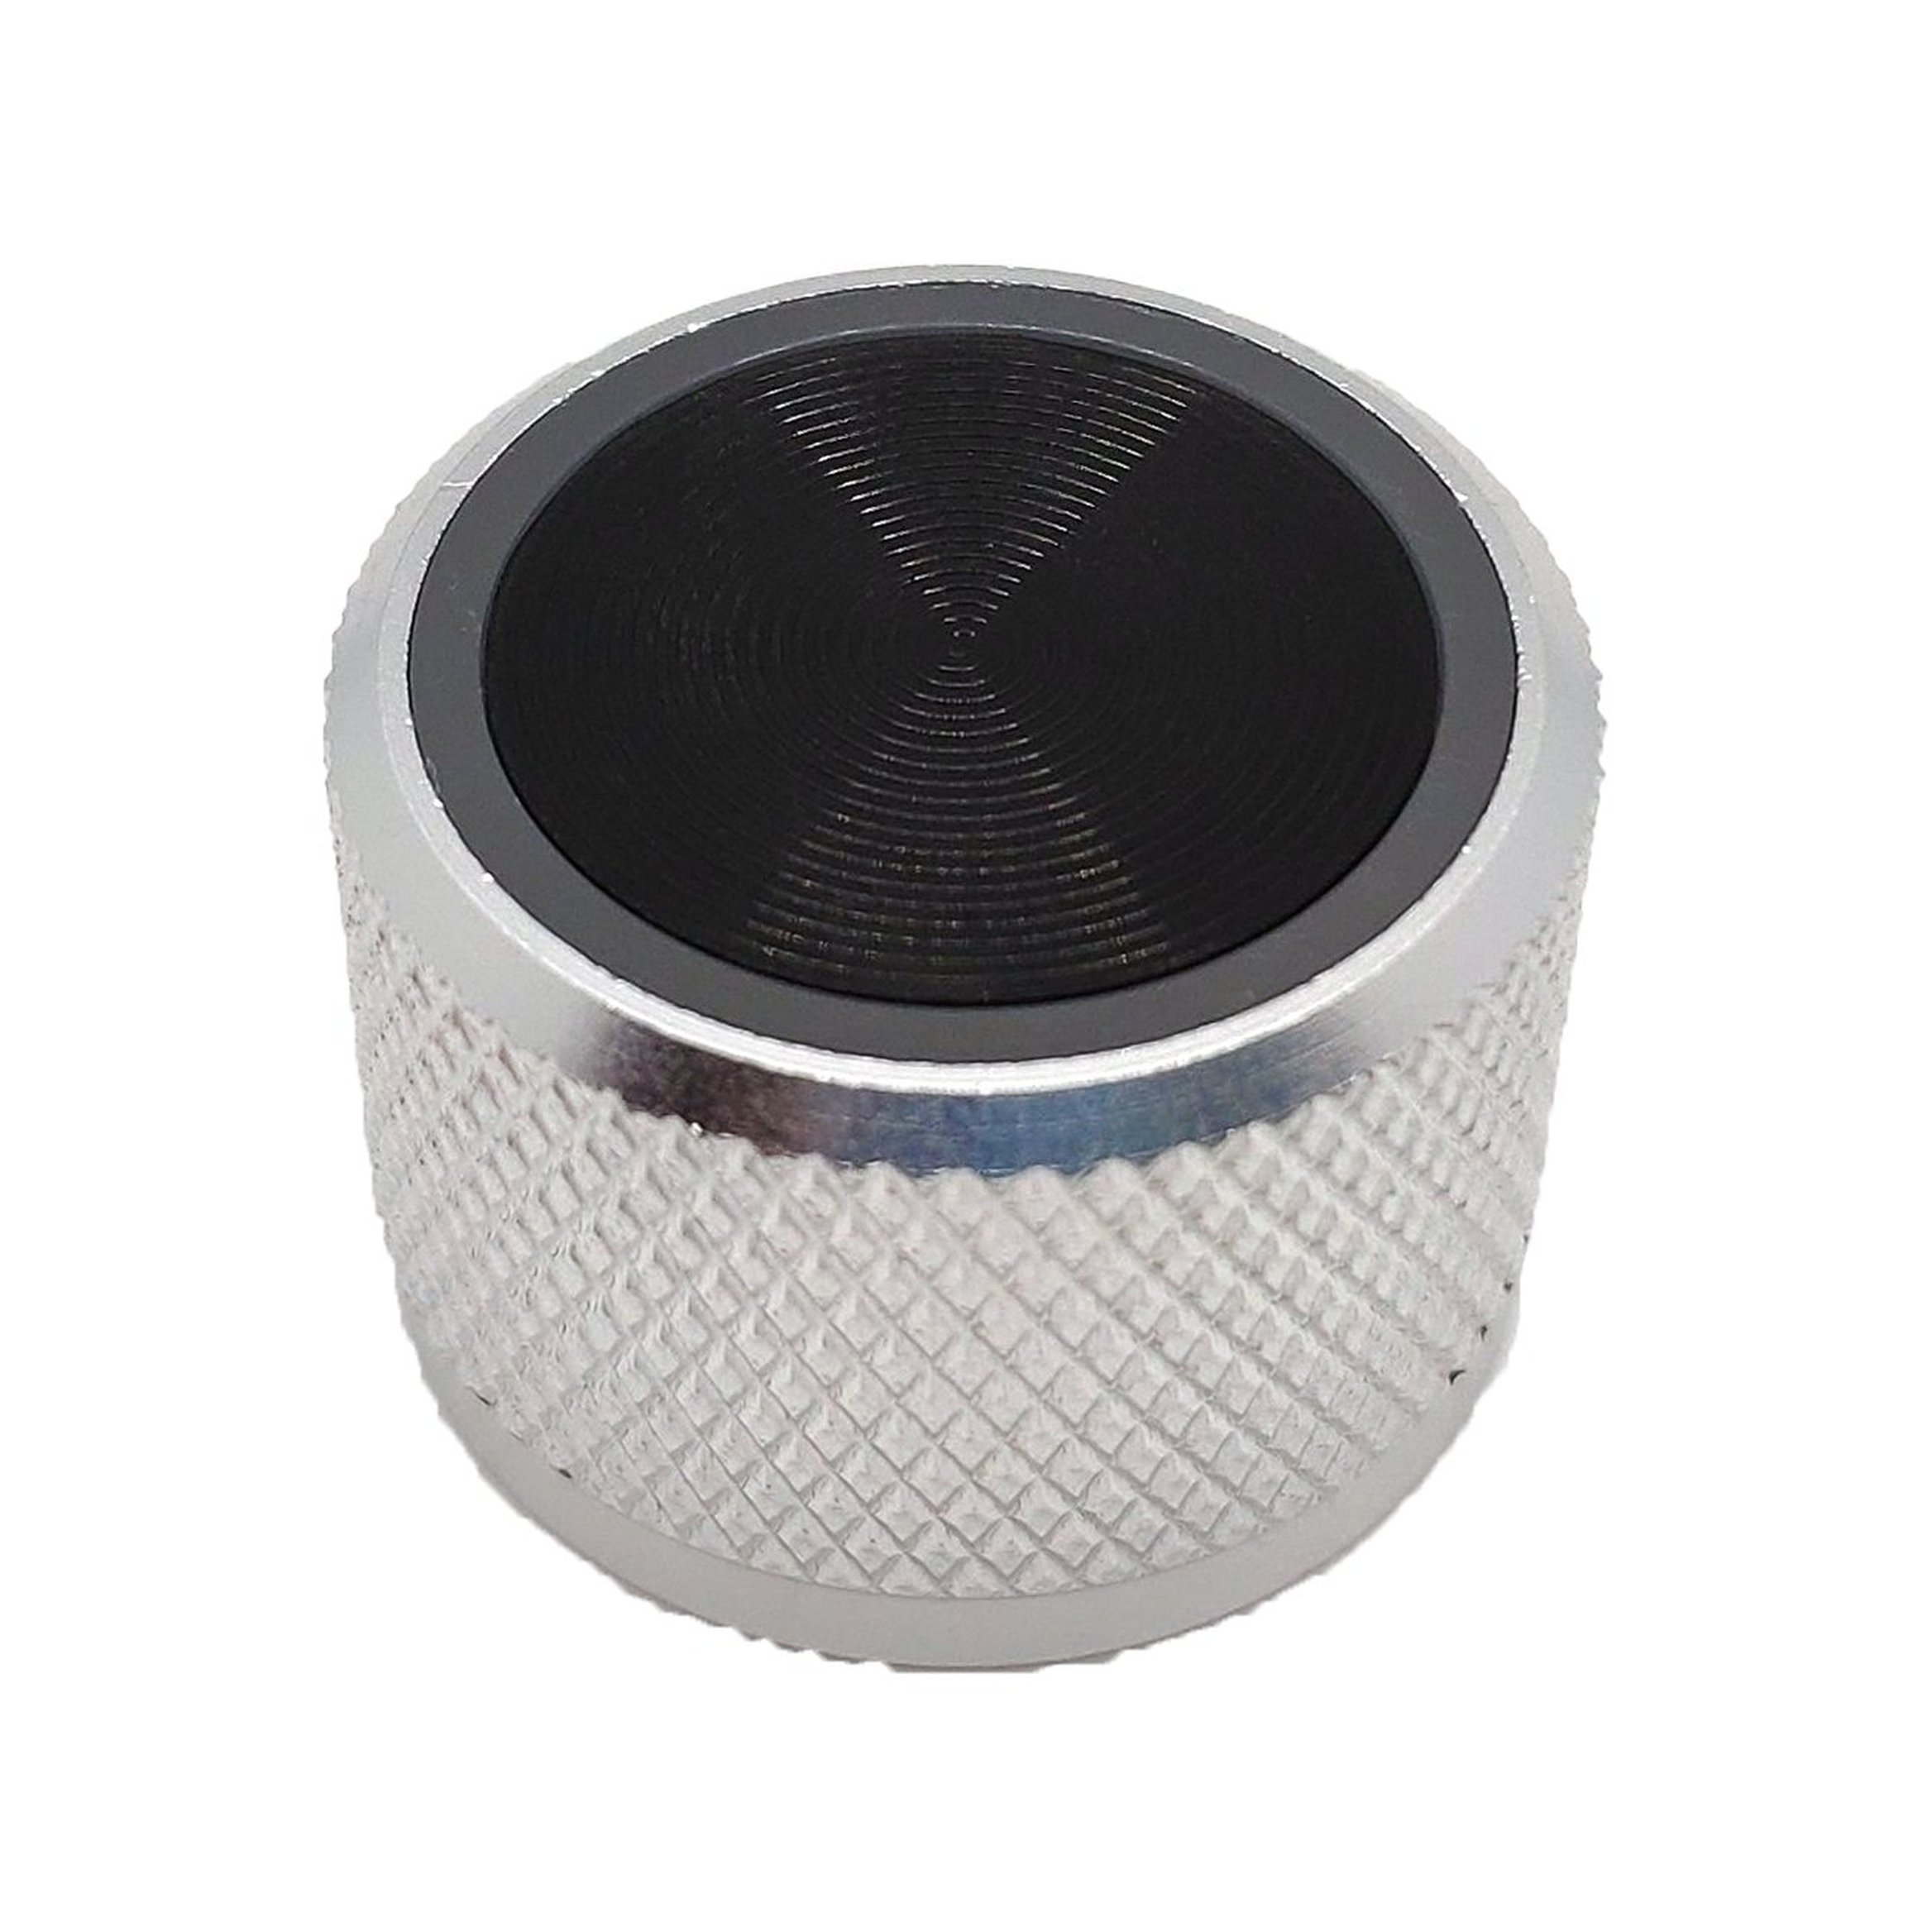 Aluminum silver knob with ring